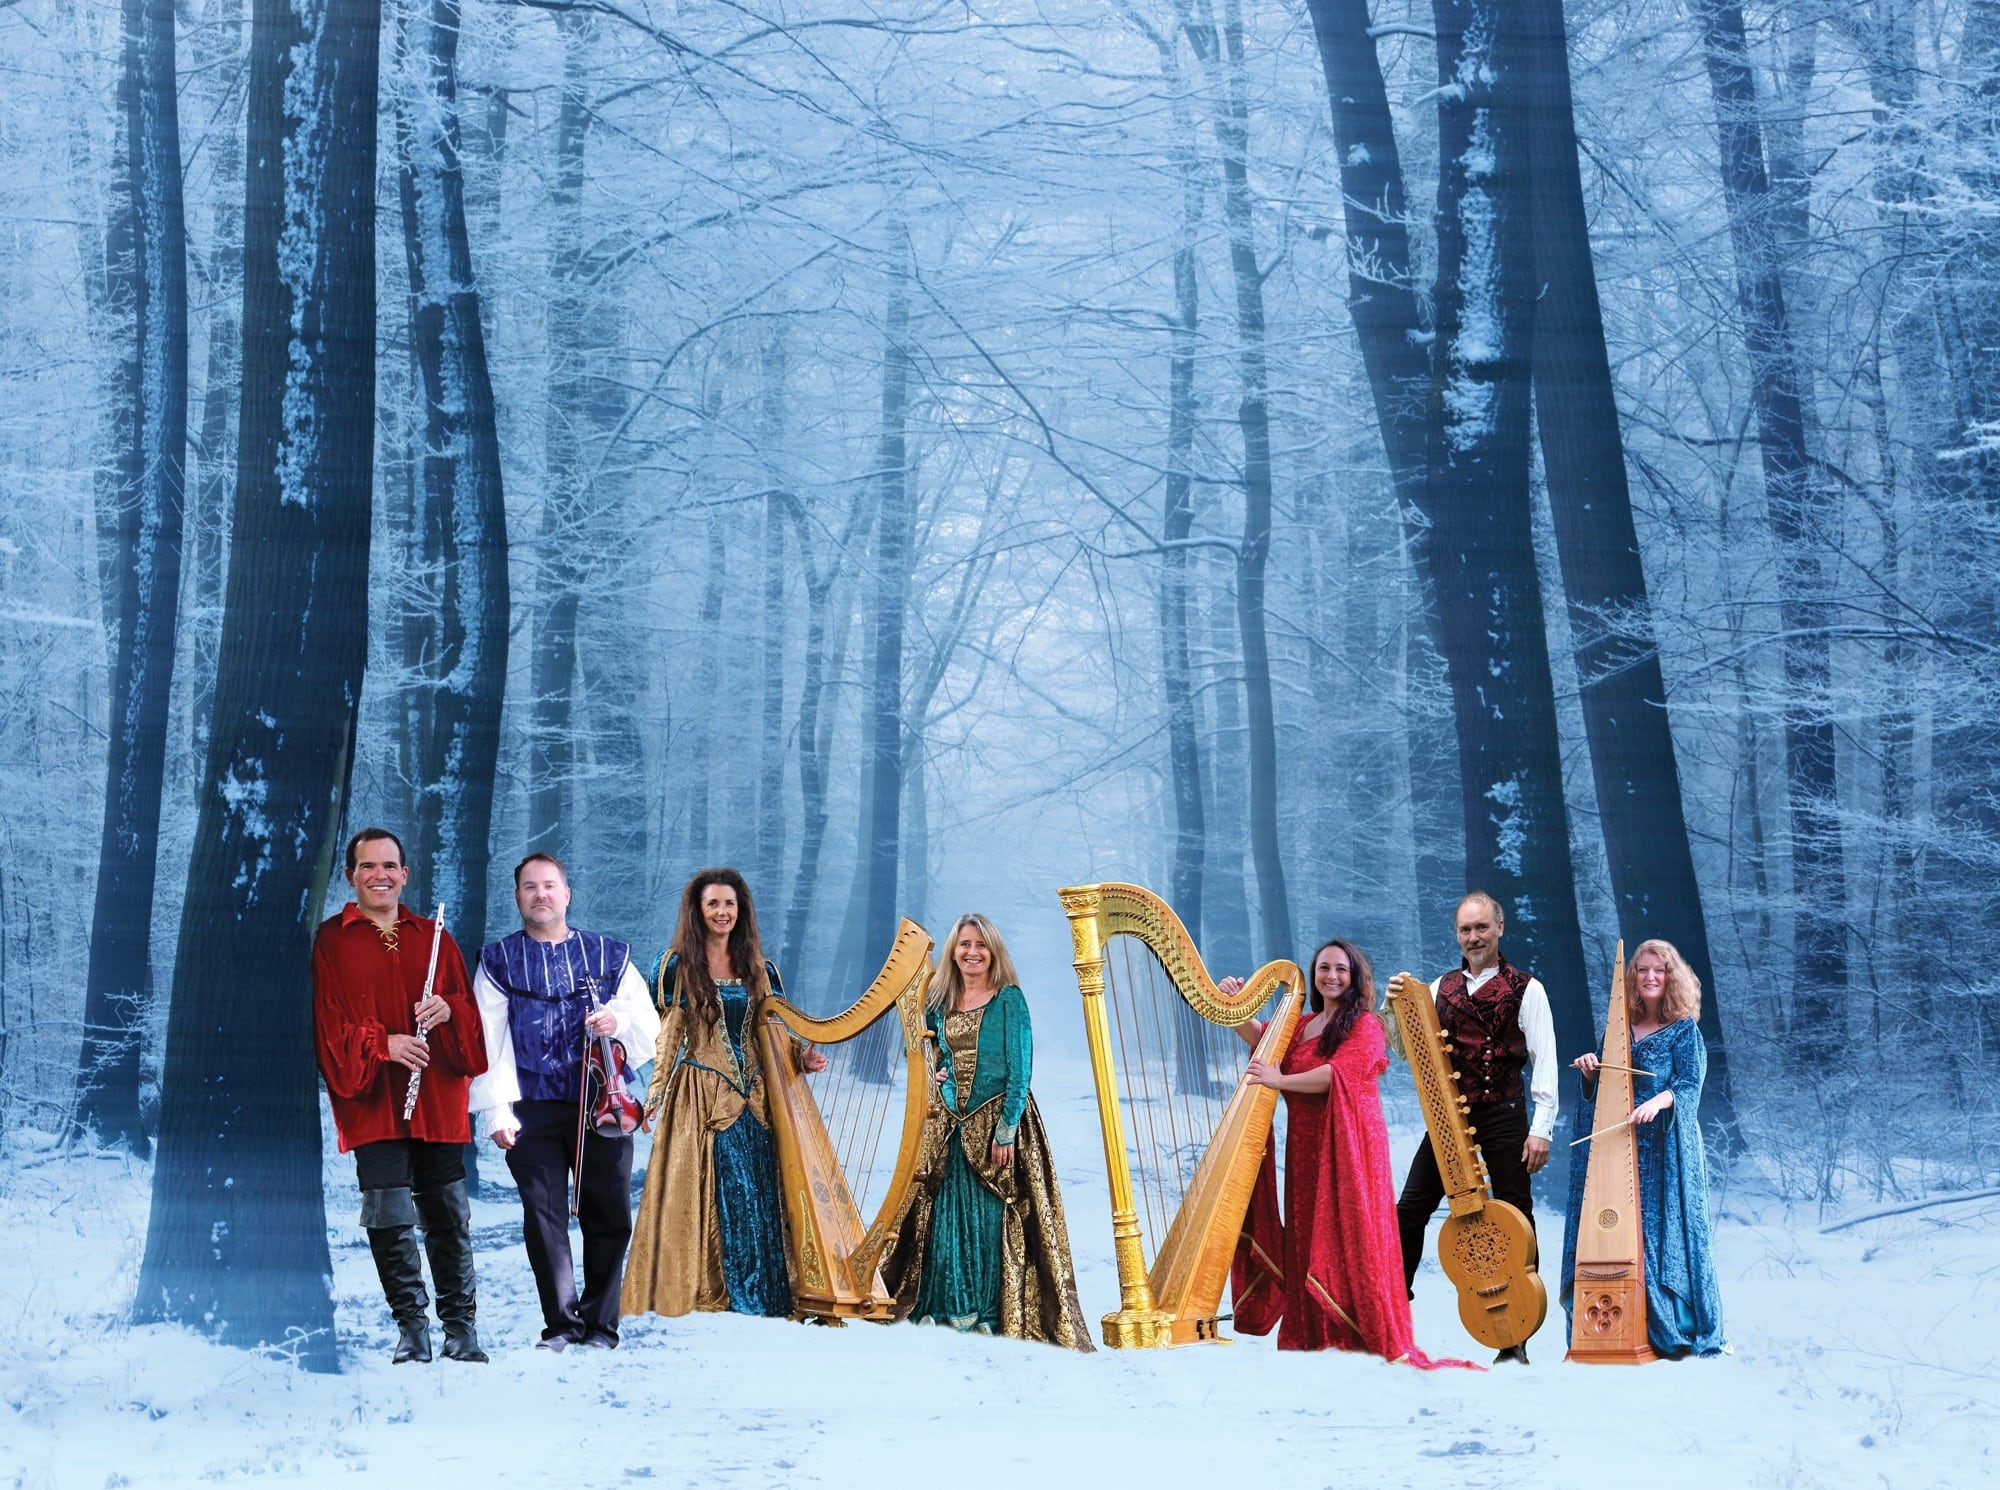 """Winter harp - December 15, 2019, 3pm & 7pmOne of the Lower Mainland's most beloved holiday concerts, Winter Harp takes you on a magical journey you will never forget.Join this world-class ensemble of singers, harps, flute, violin, medieval instruments and percussion for a concert of heartwarming carols and stories in celebration of Christmas. The musicians, in rich medieval attire, perform on a stage set with magnificent backdrops of cathedral and snow that will whisk you to a land of pure magic.For 25 years, tens of thousands of people have made Winter Harp their annual tradition. Winter Harp….. Christmas begins here.""""...an enrapturing event that plucks at your heart strings."""